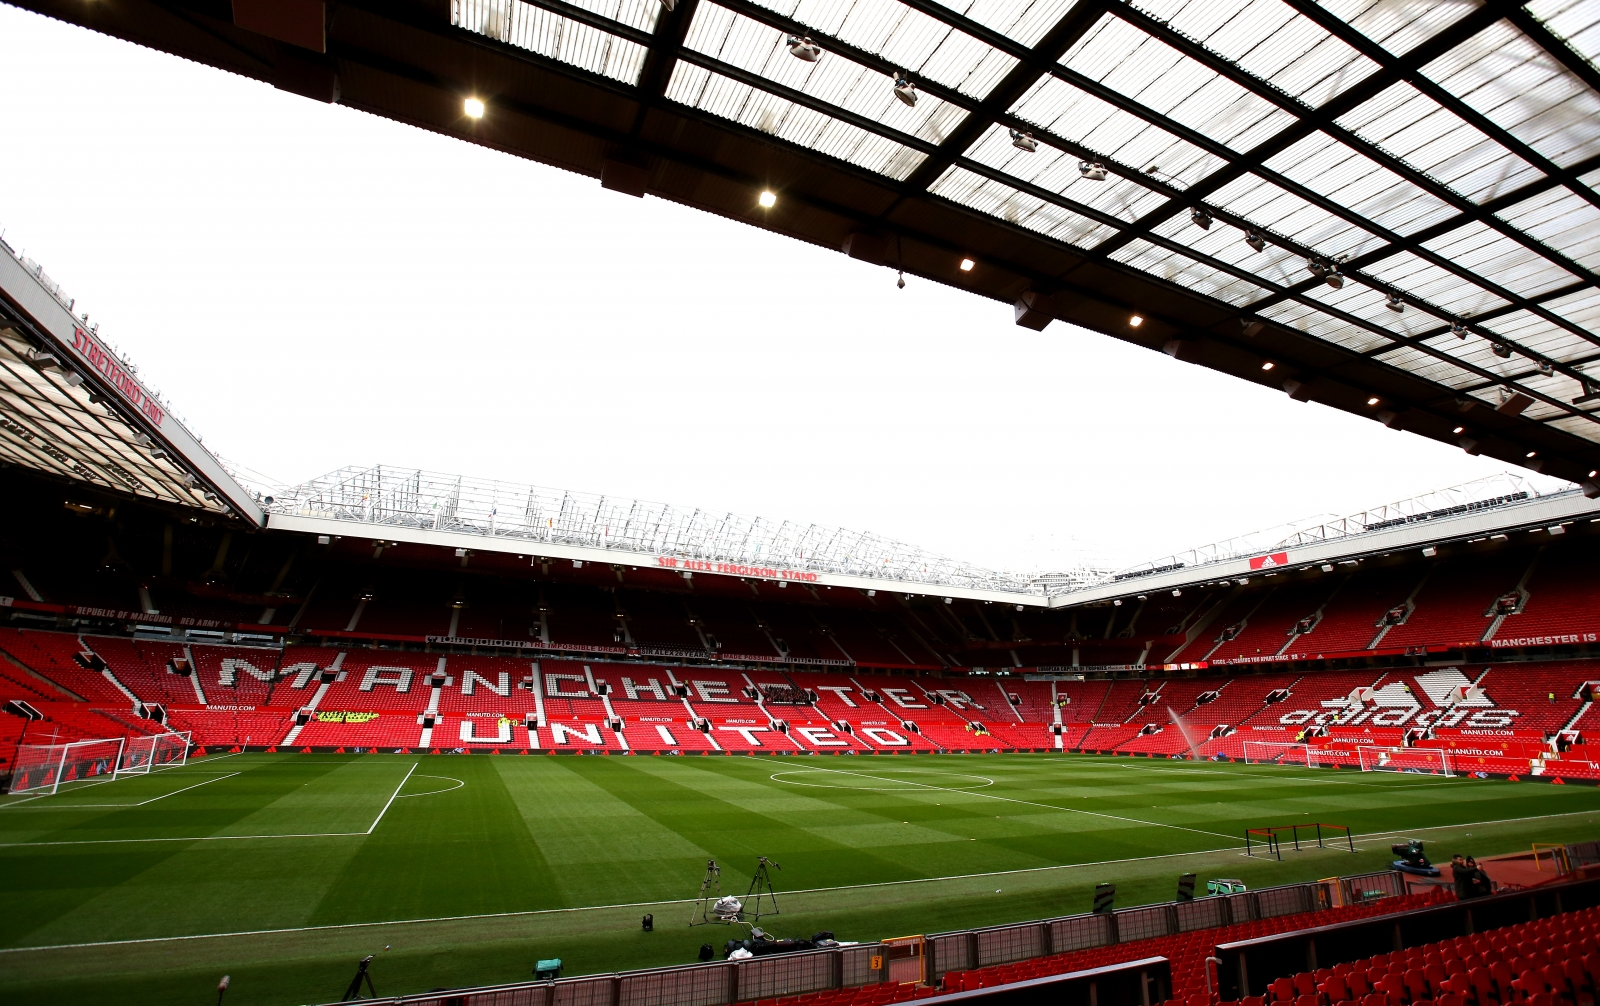 Fire breaks out at Manchester United's Old Trafford stadium